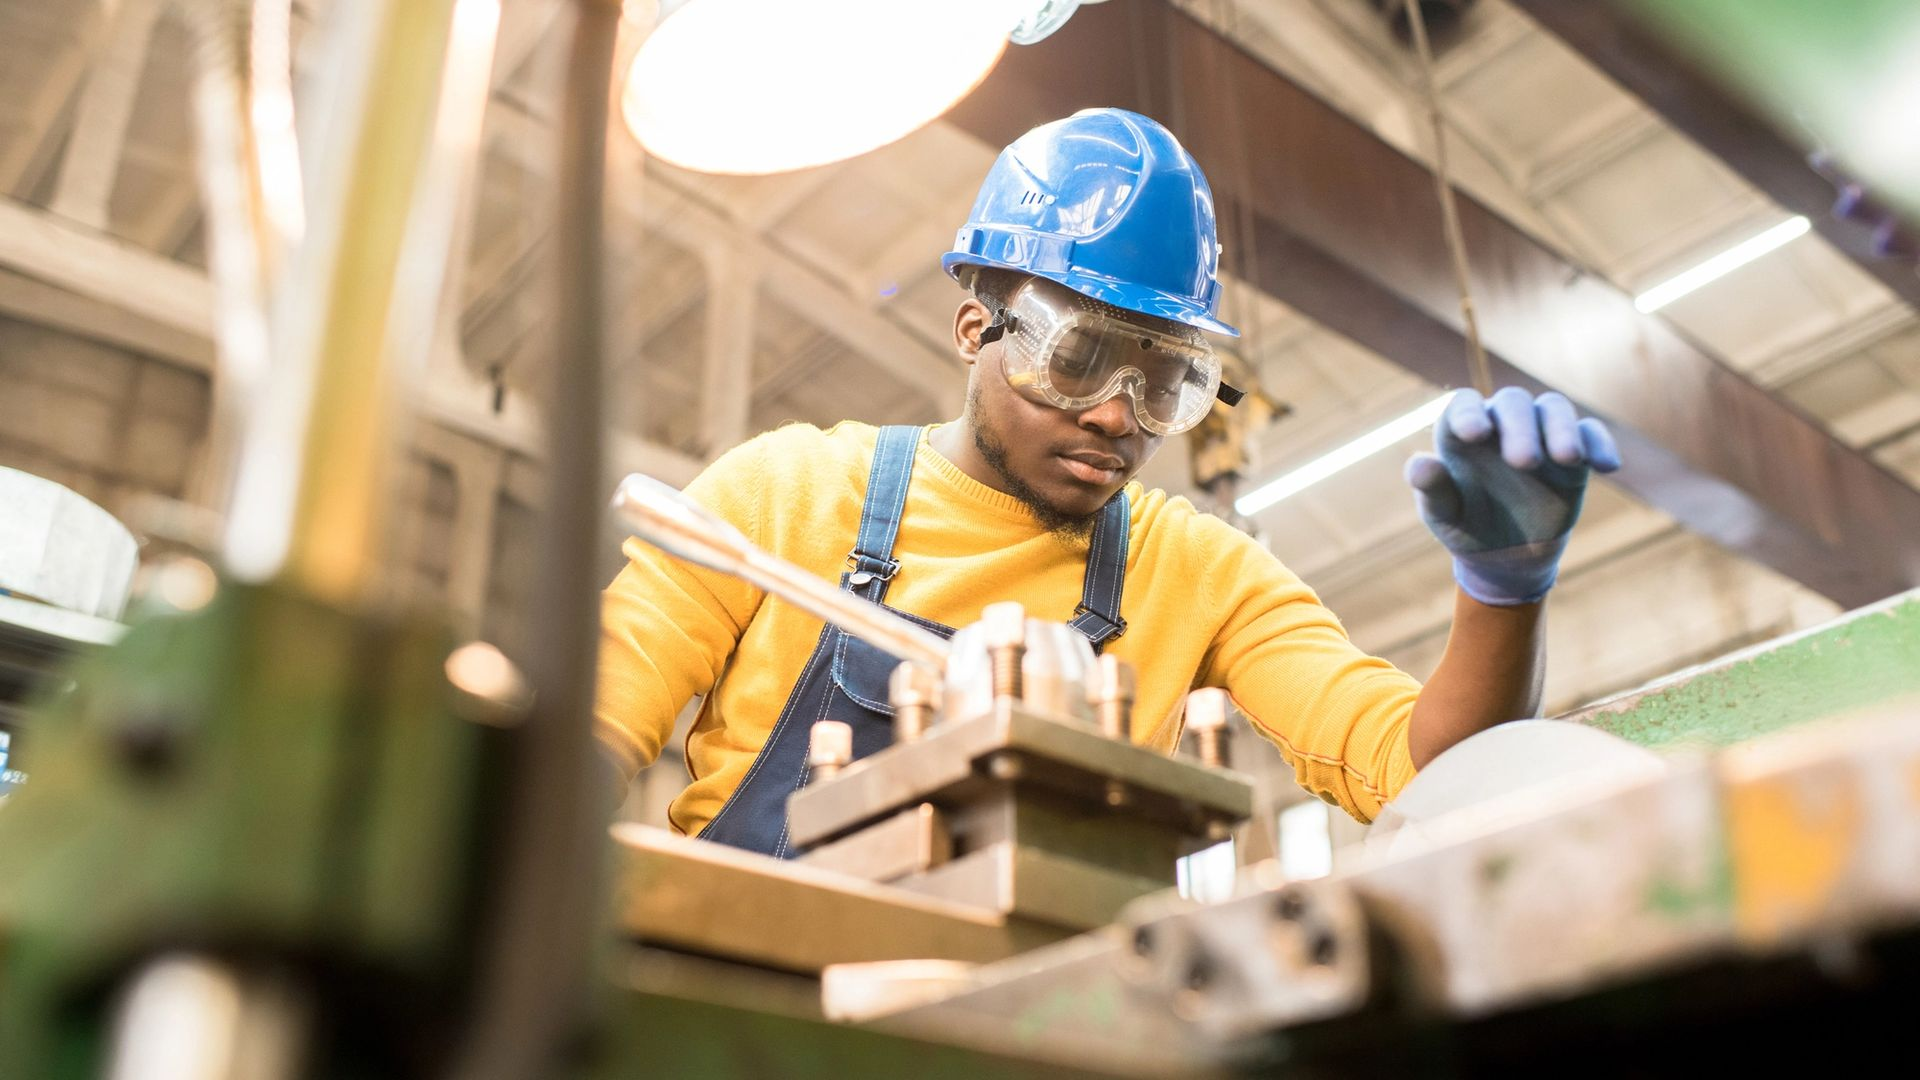 Man wearing hard hat and safety glasses working at a machine in a workshop